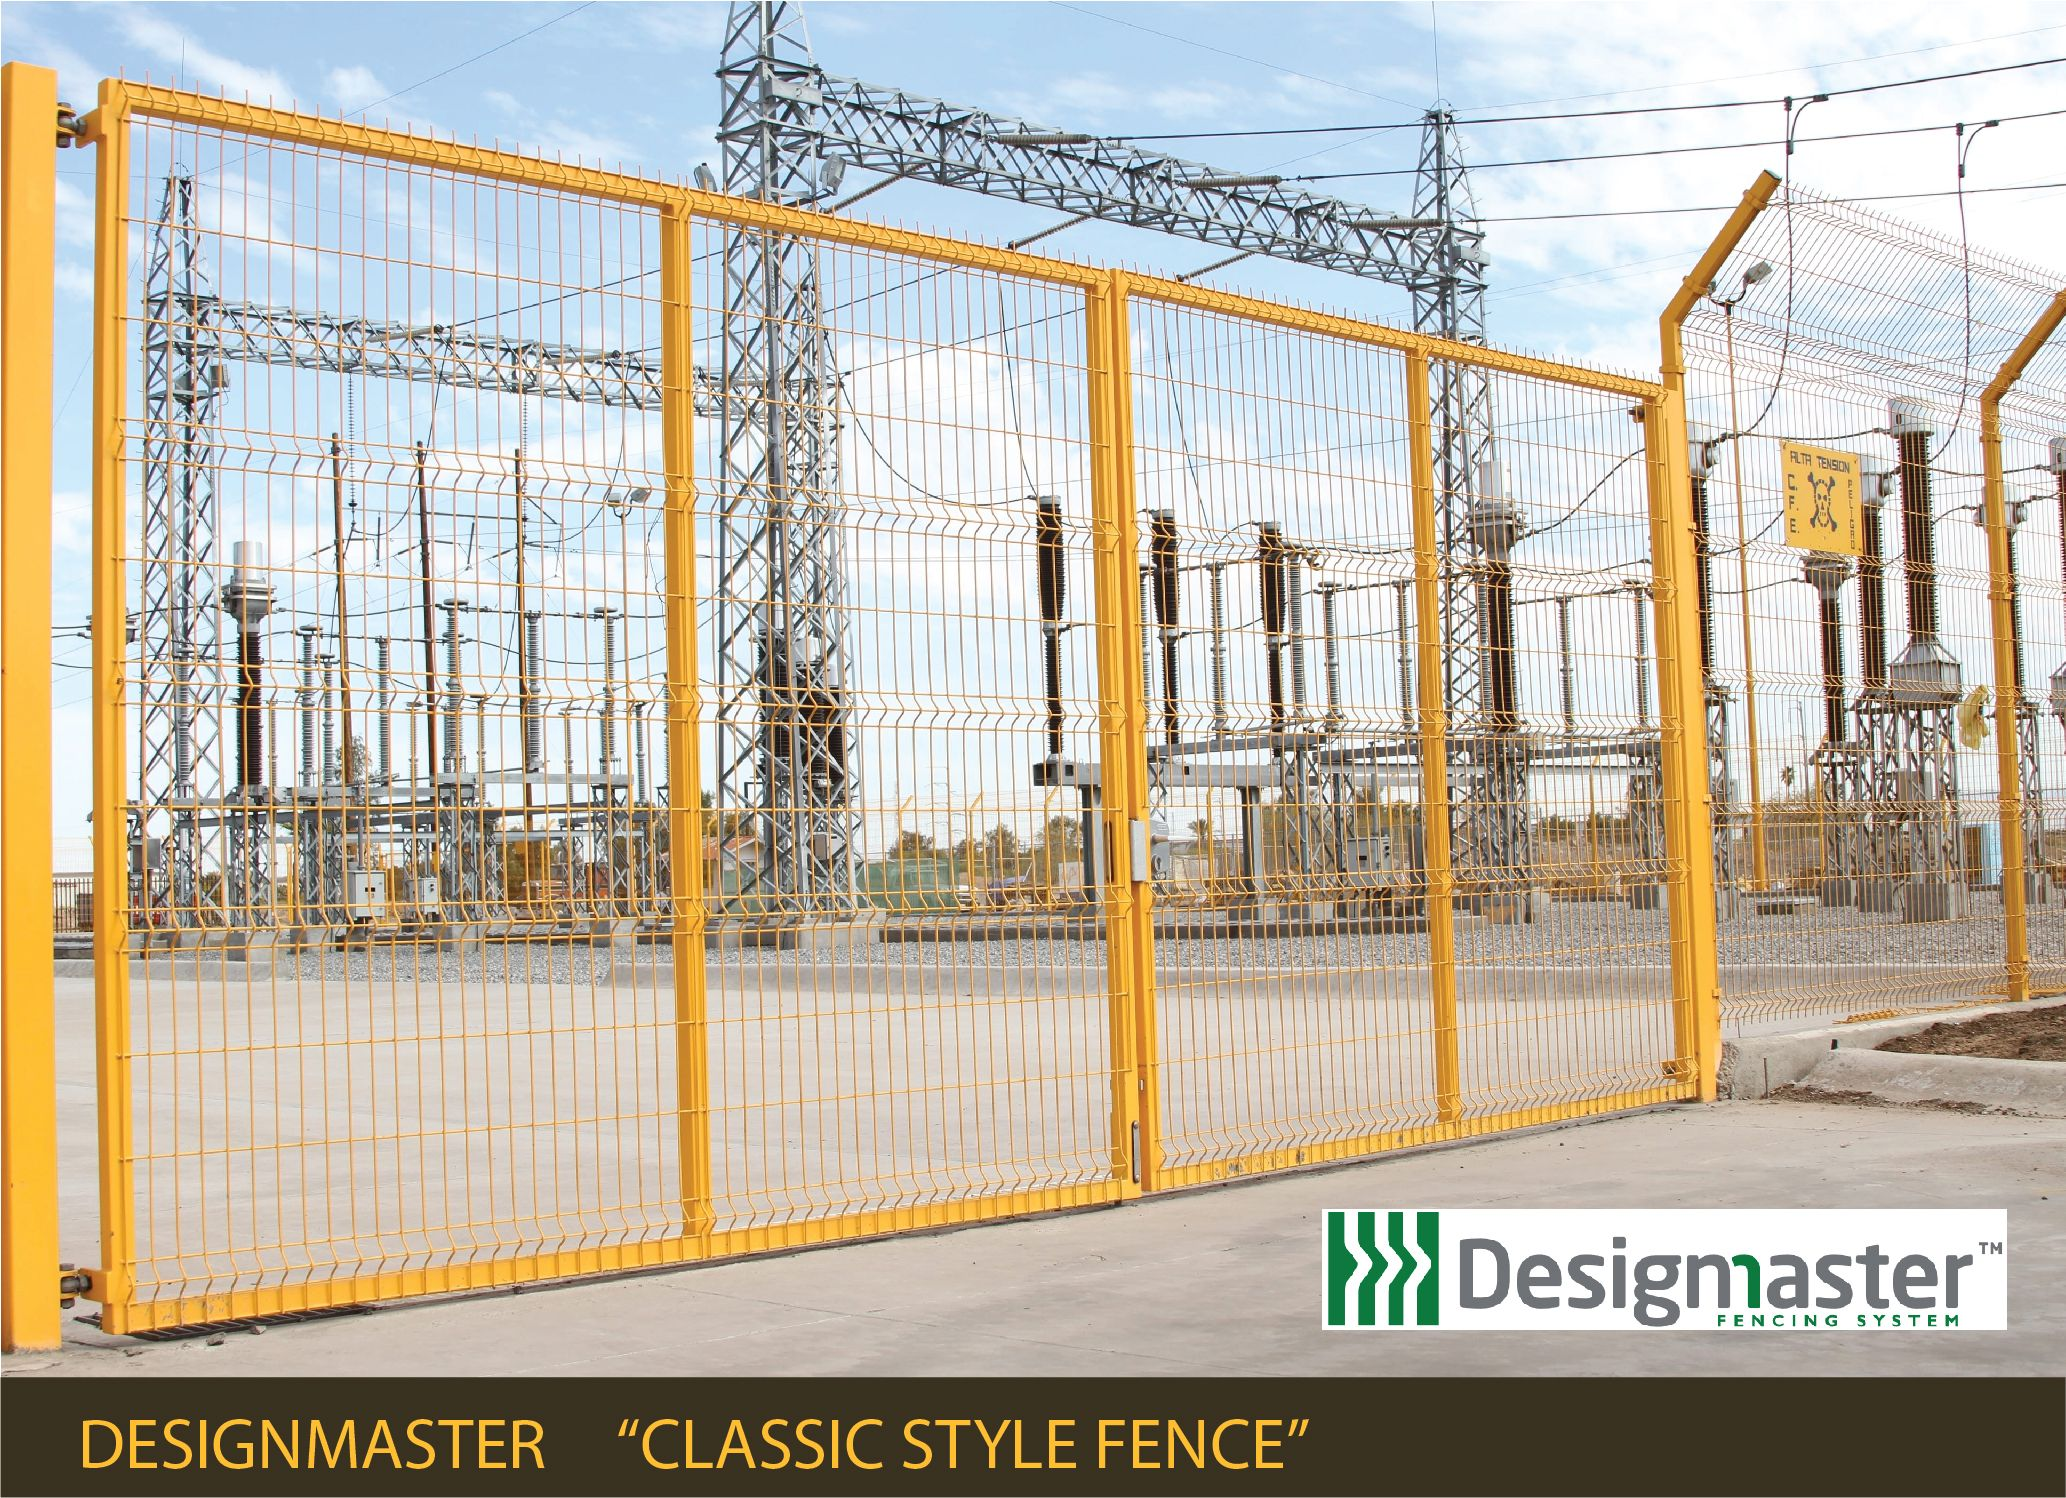 Designmaster fences are perfect for utility substation